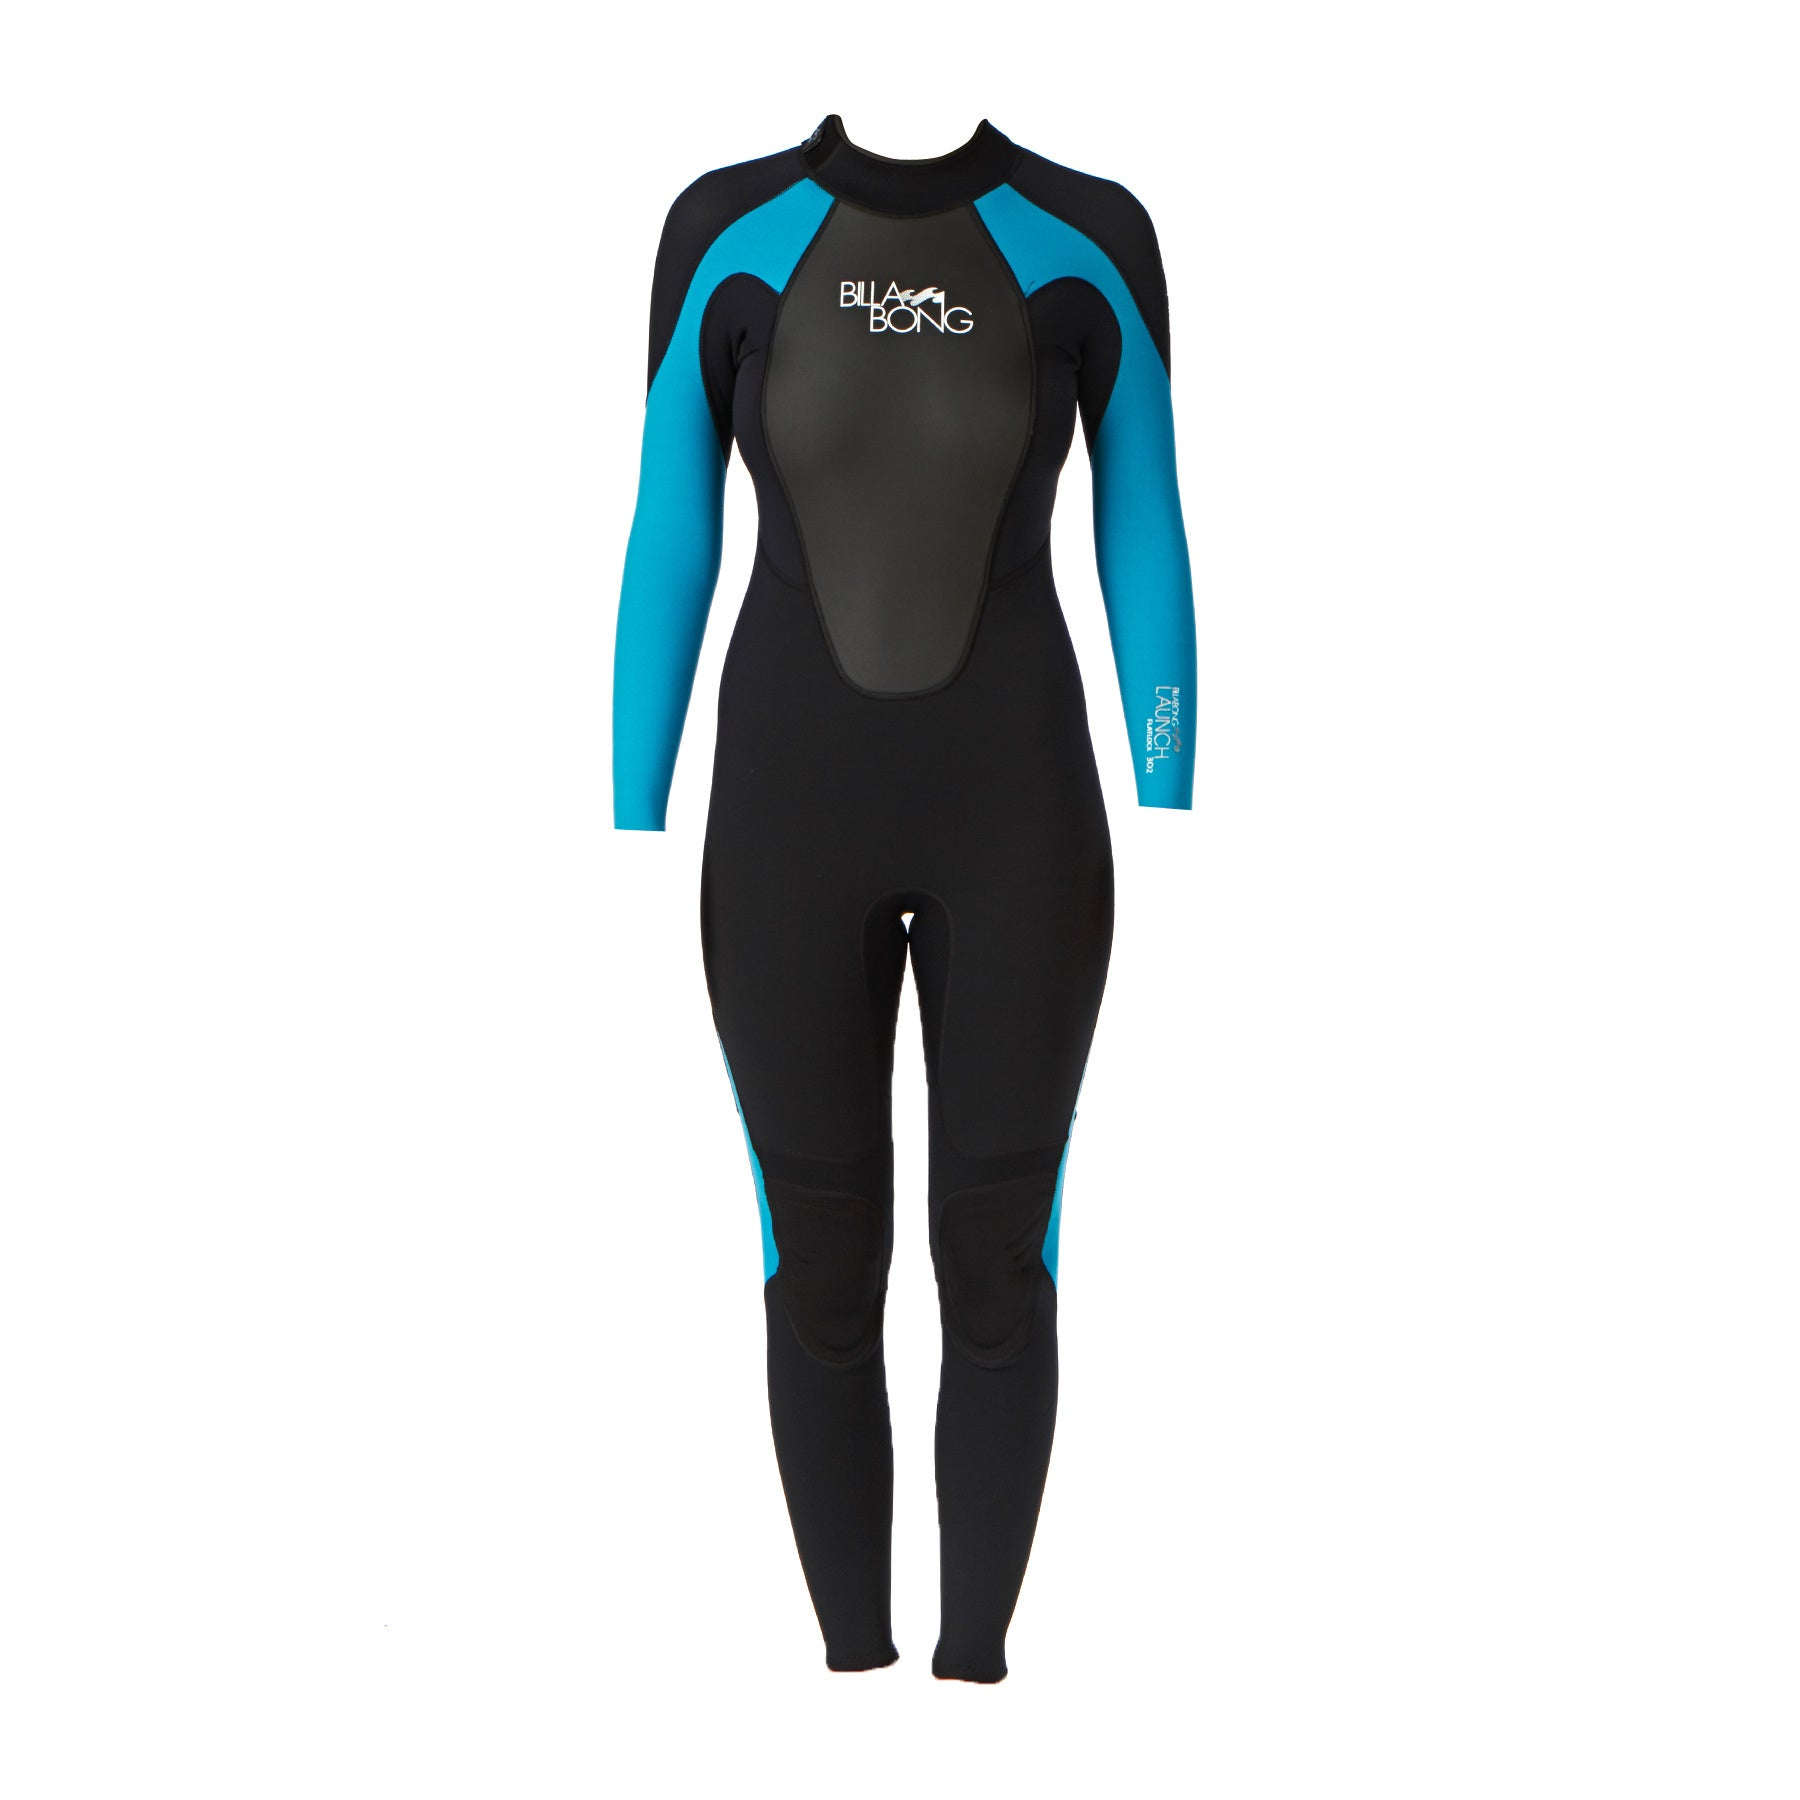 Billabong Launch 3/2mm Back Zip Womens Wetsuit - Turquoise